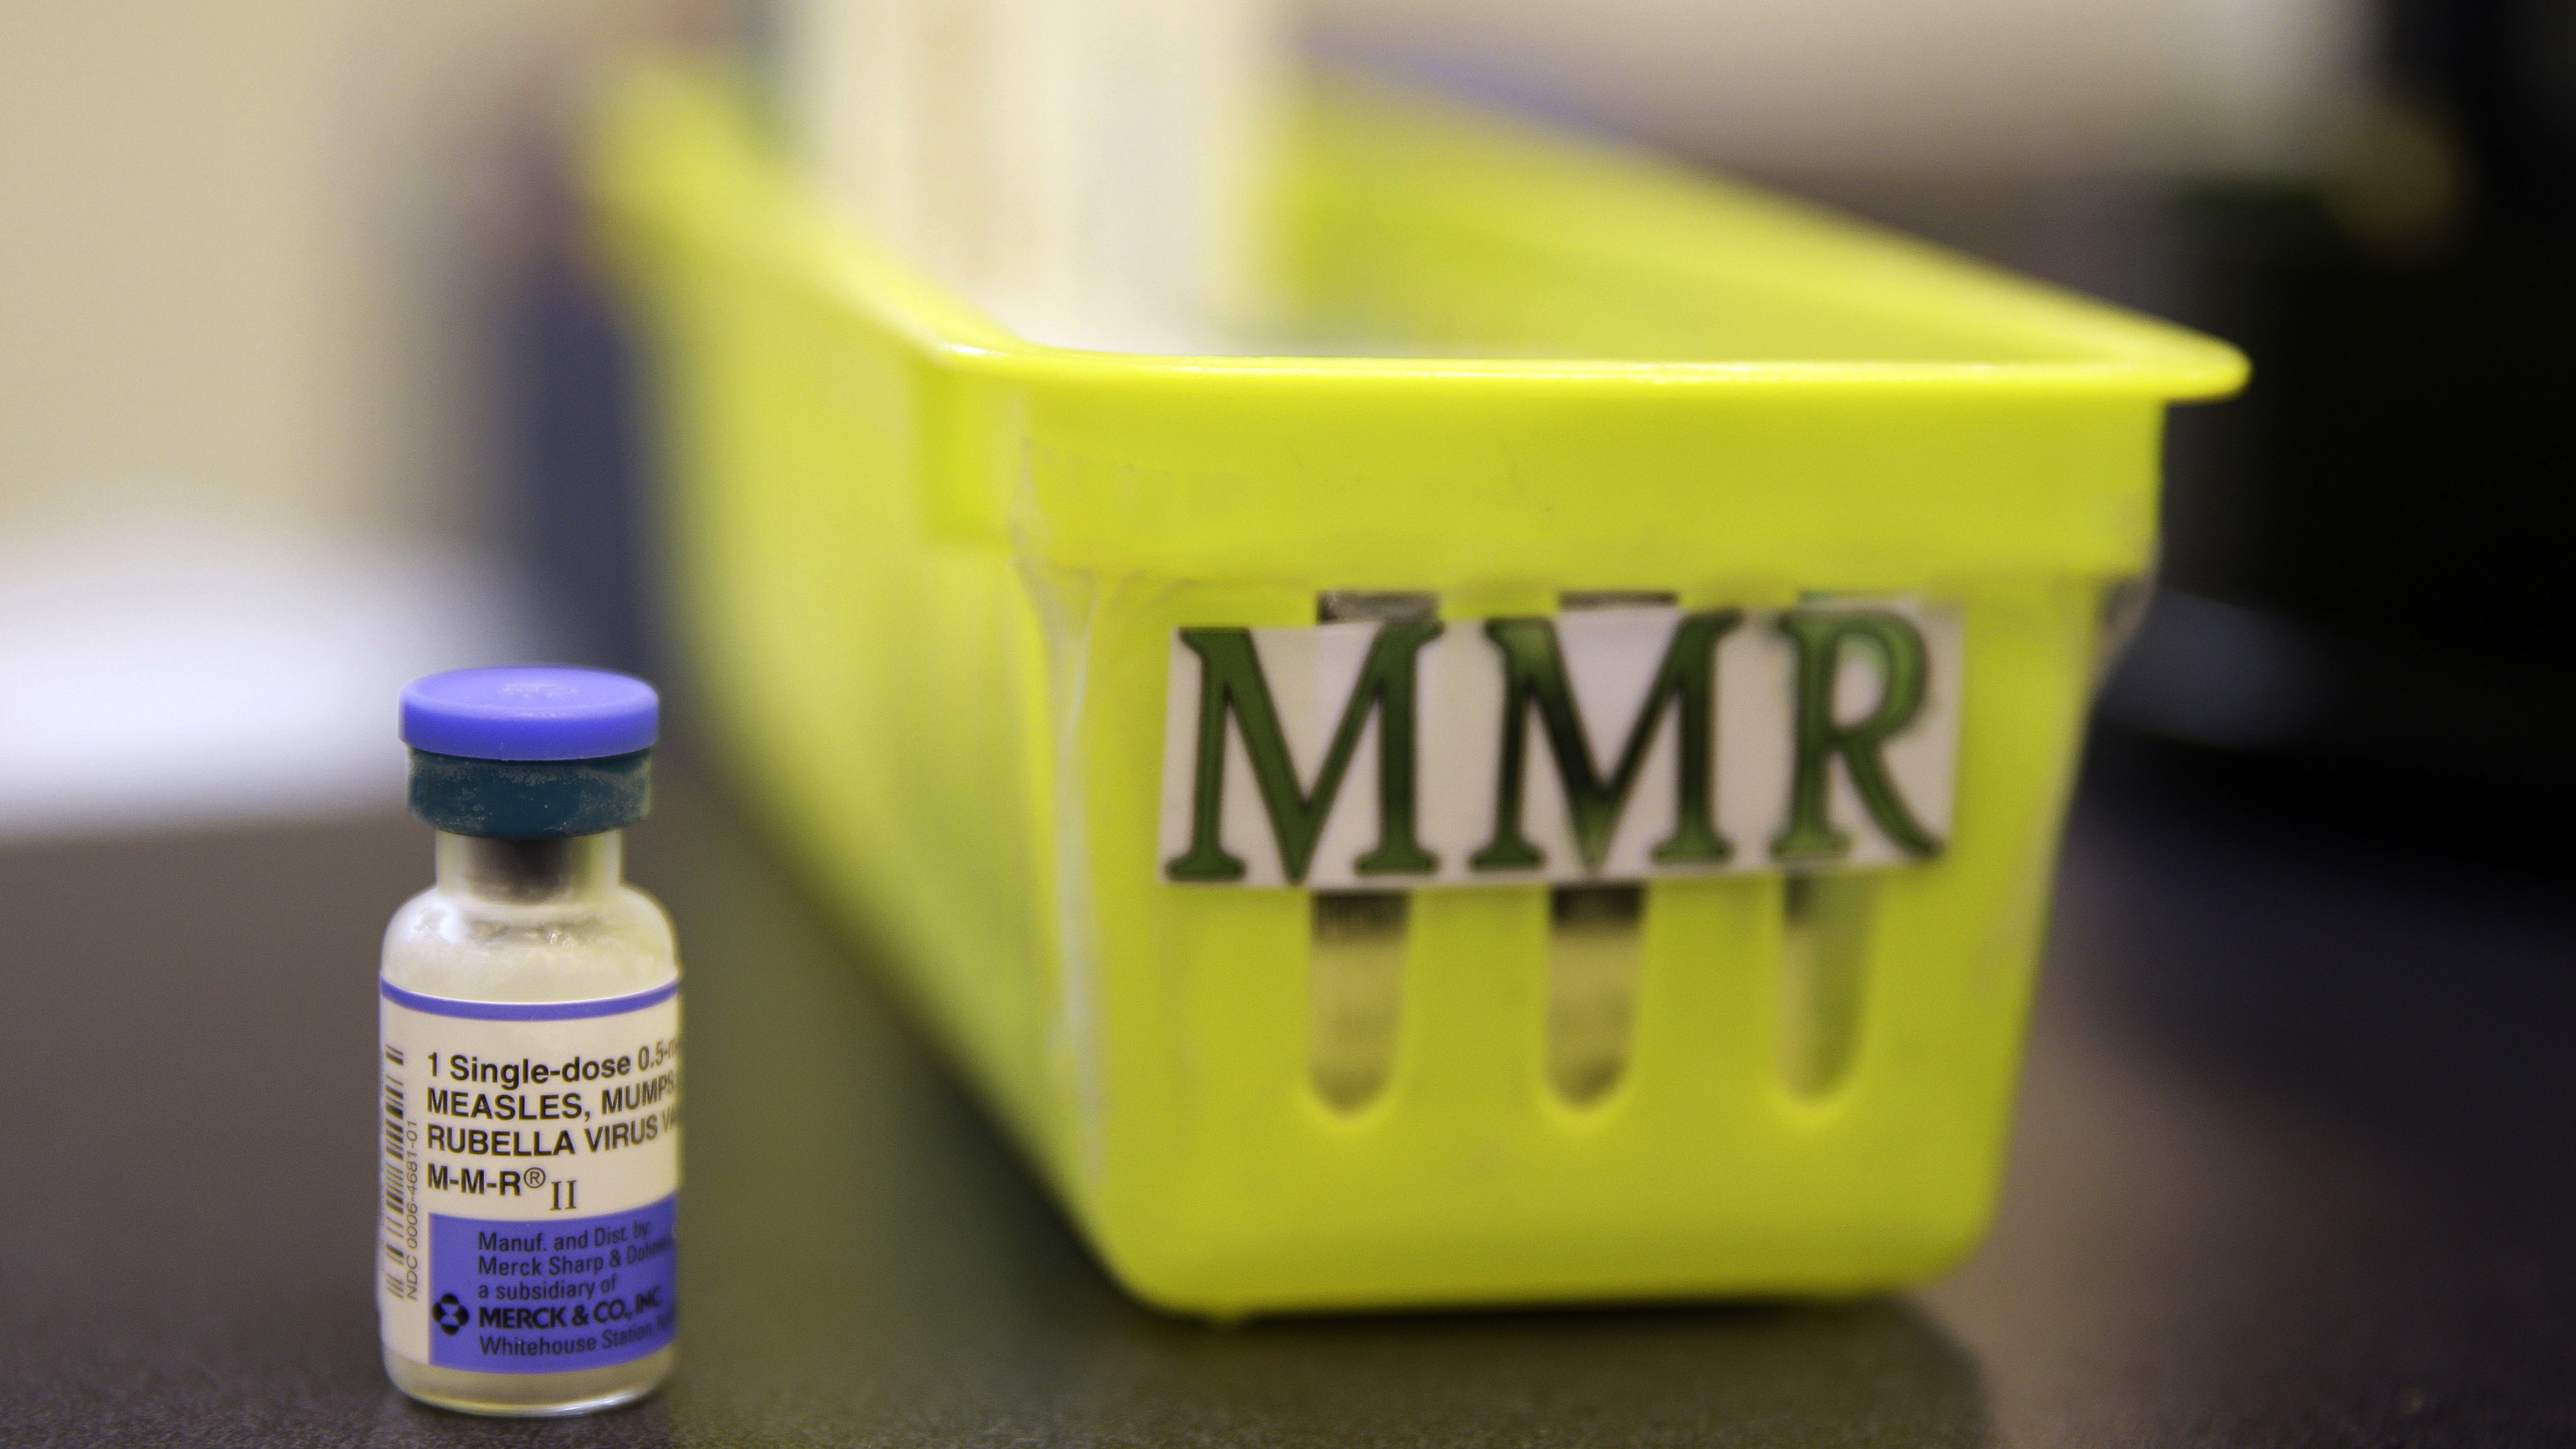 MMR — the modern combination vaccine against measles, mumps and rubella — provides stronger, longer-lasting protection against measles than the stand-alone measles vaccine typically given in the U.S. in the early 1960s.